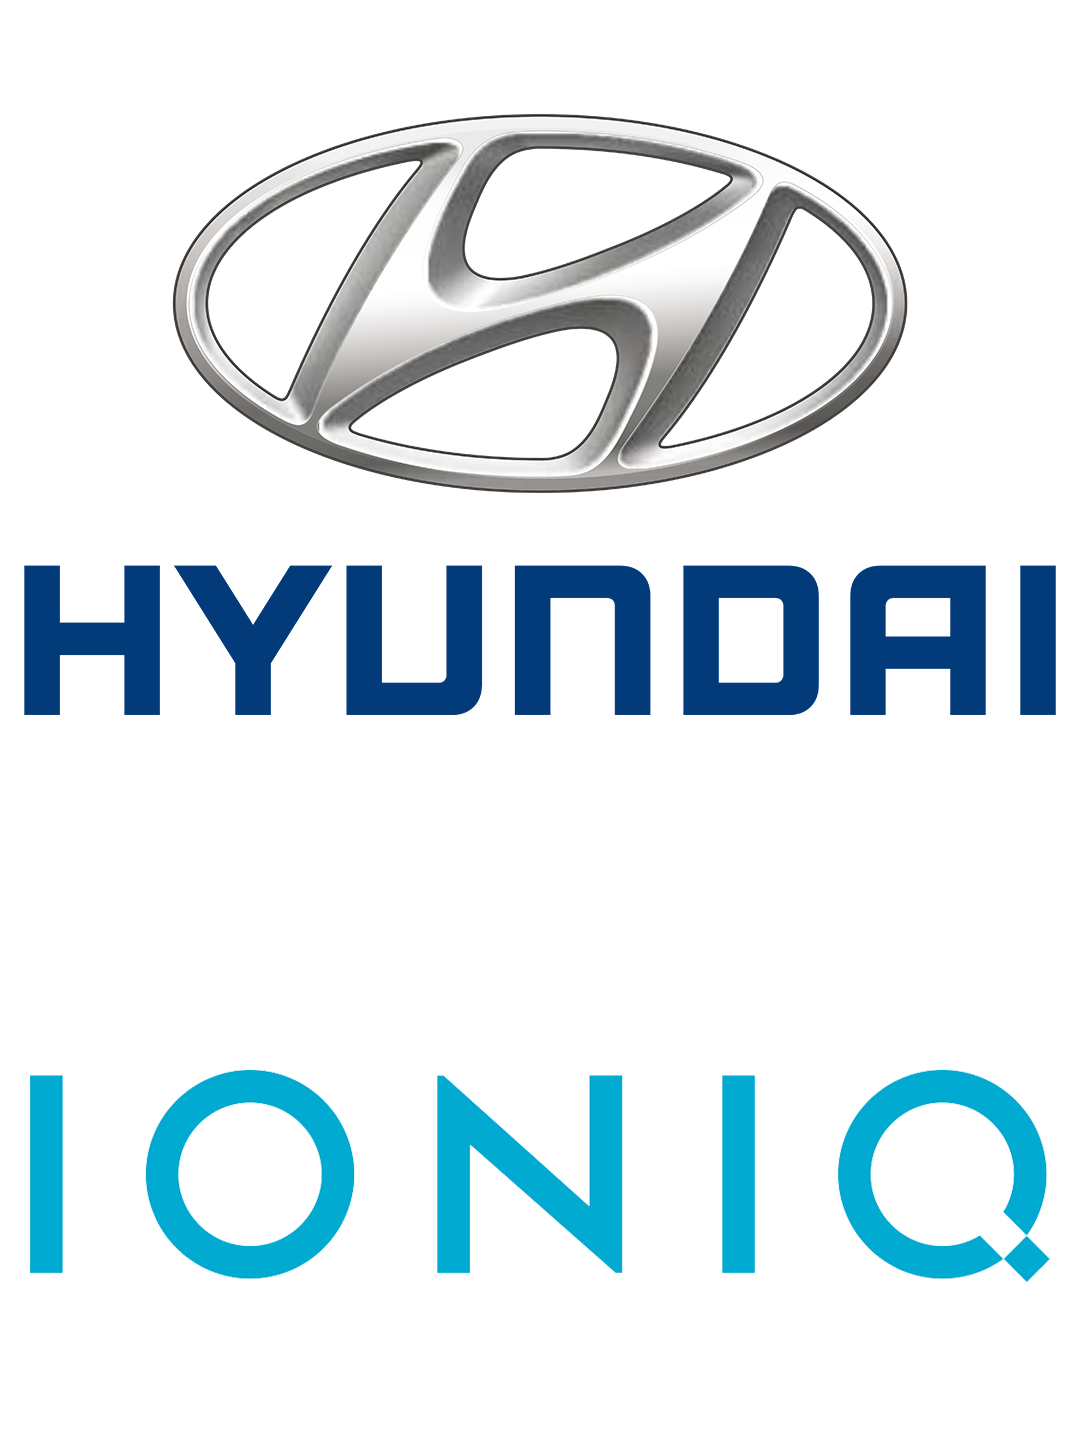 Hyundai Ioniq 5 Electric vehicle